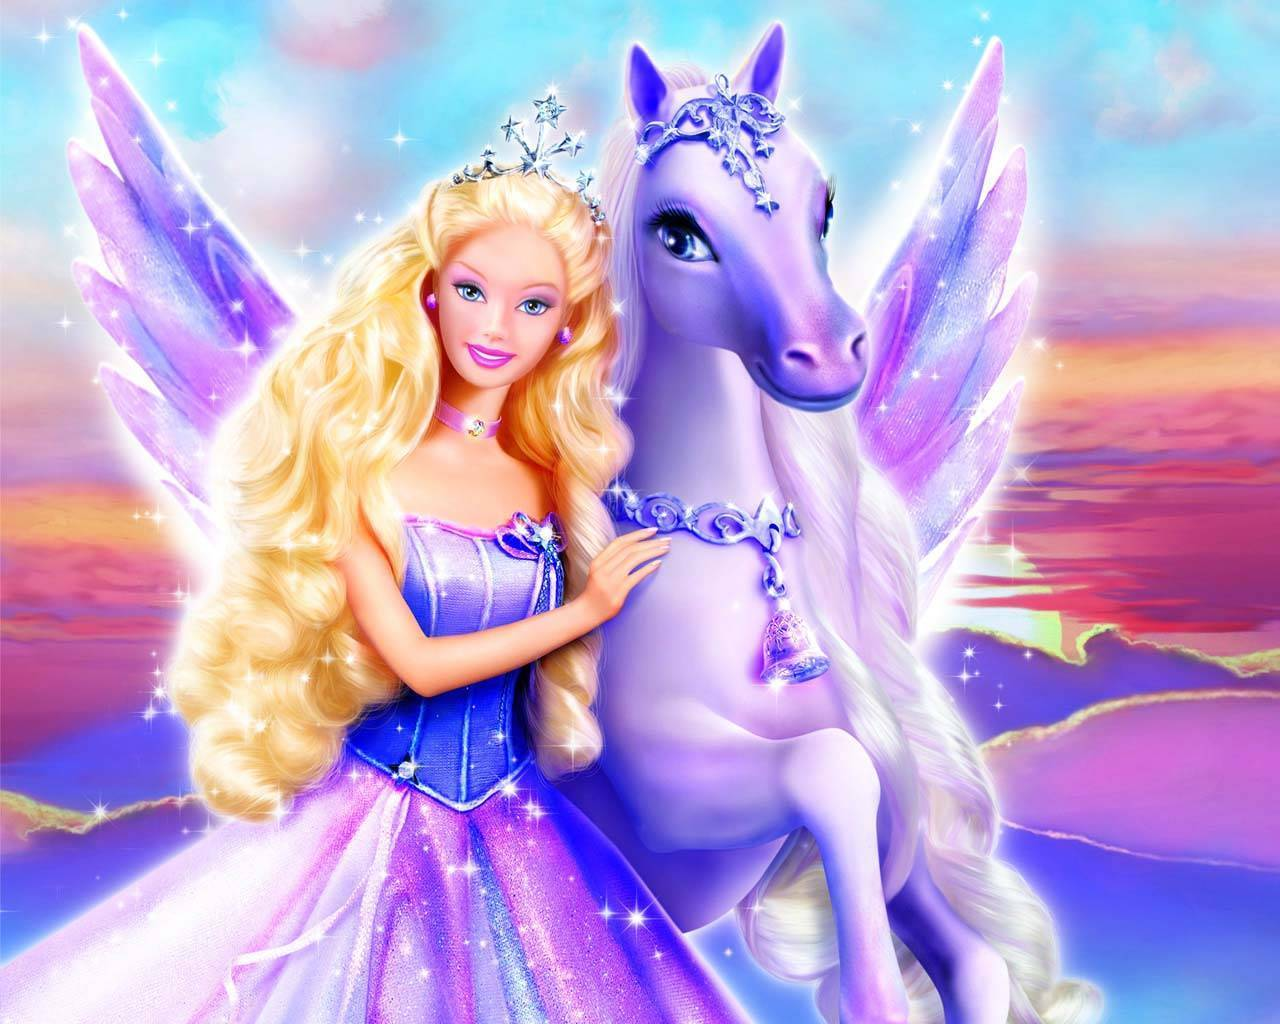 Pegasus and barbie princess wallpaper princess wallpaper backgrounds pegasus and barbie princess wallpaper voltagebd Images